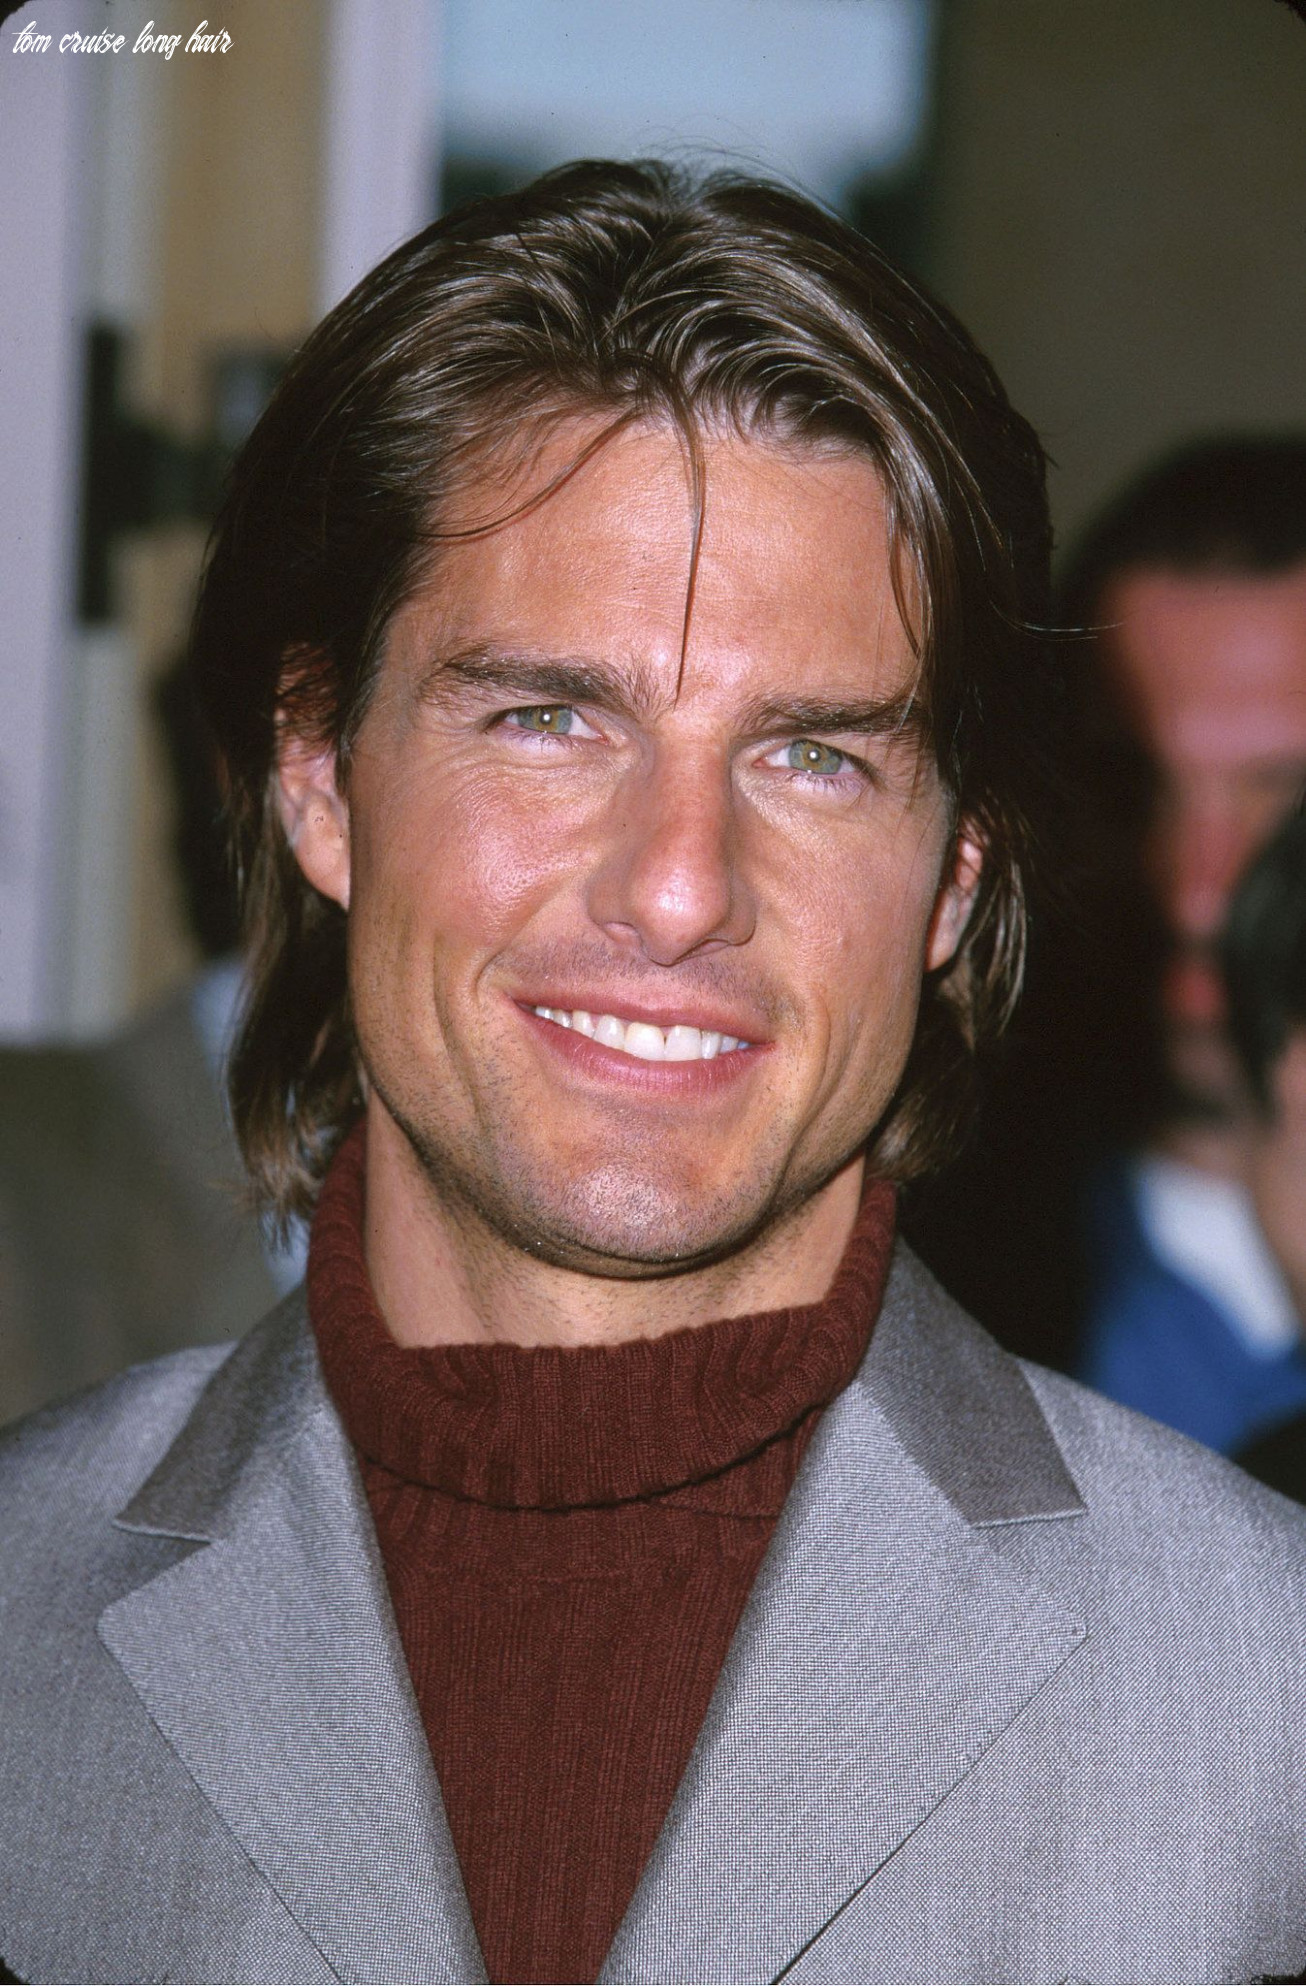 Tom cruise had long hair for the academy awards in march 9